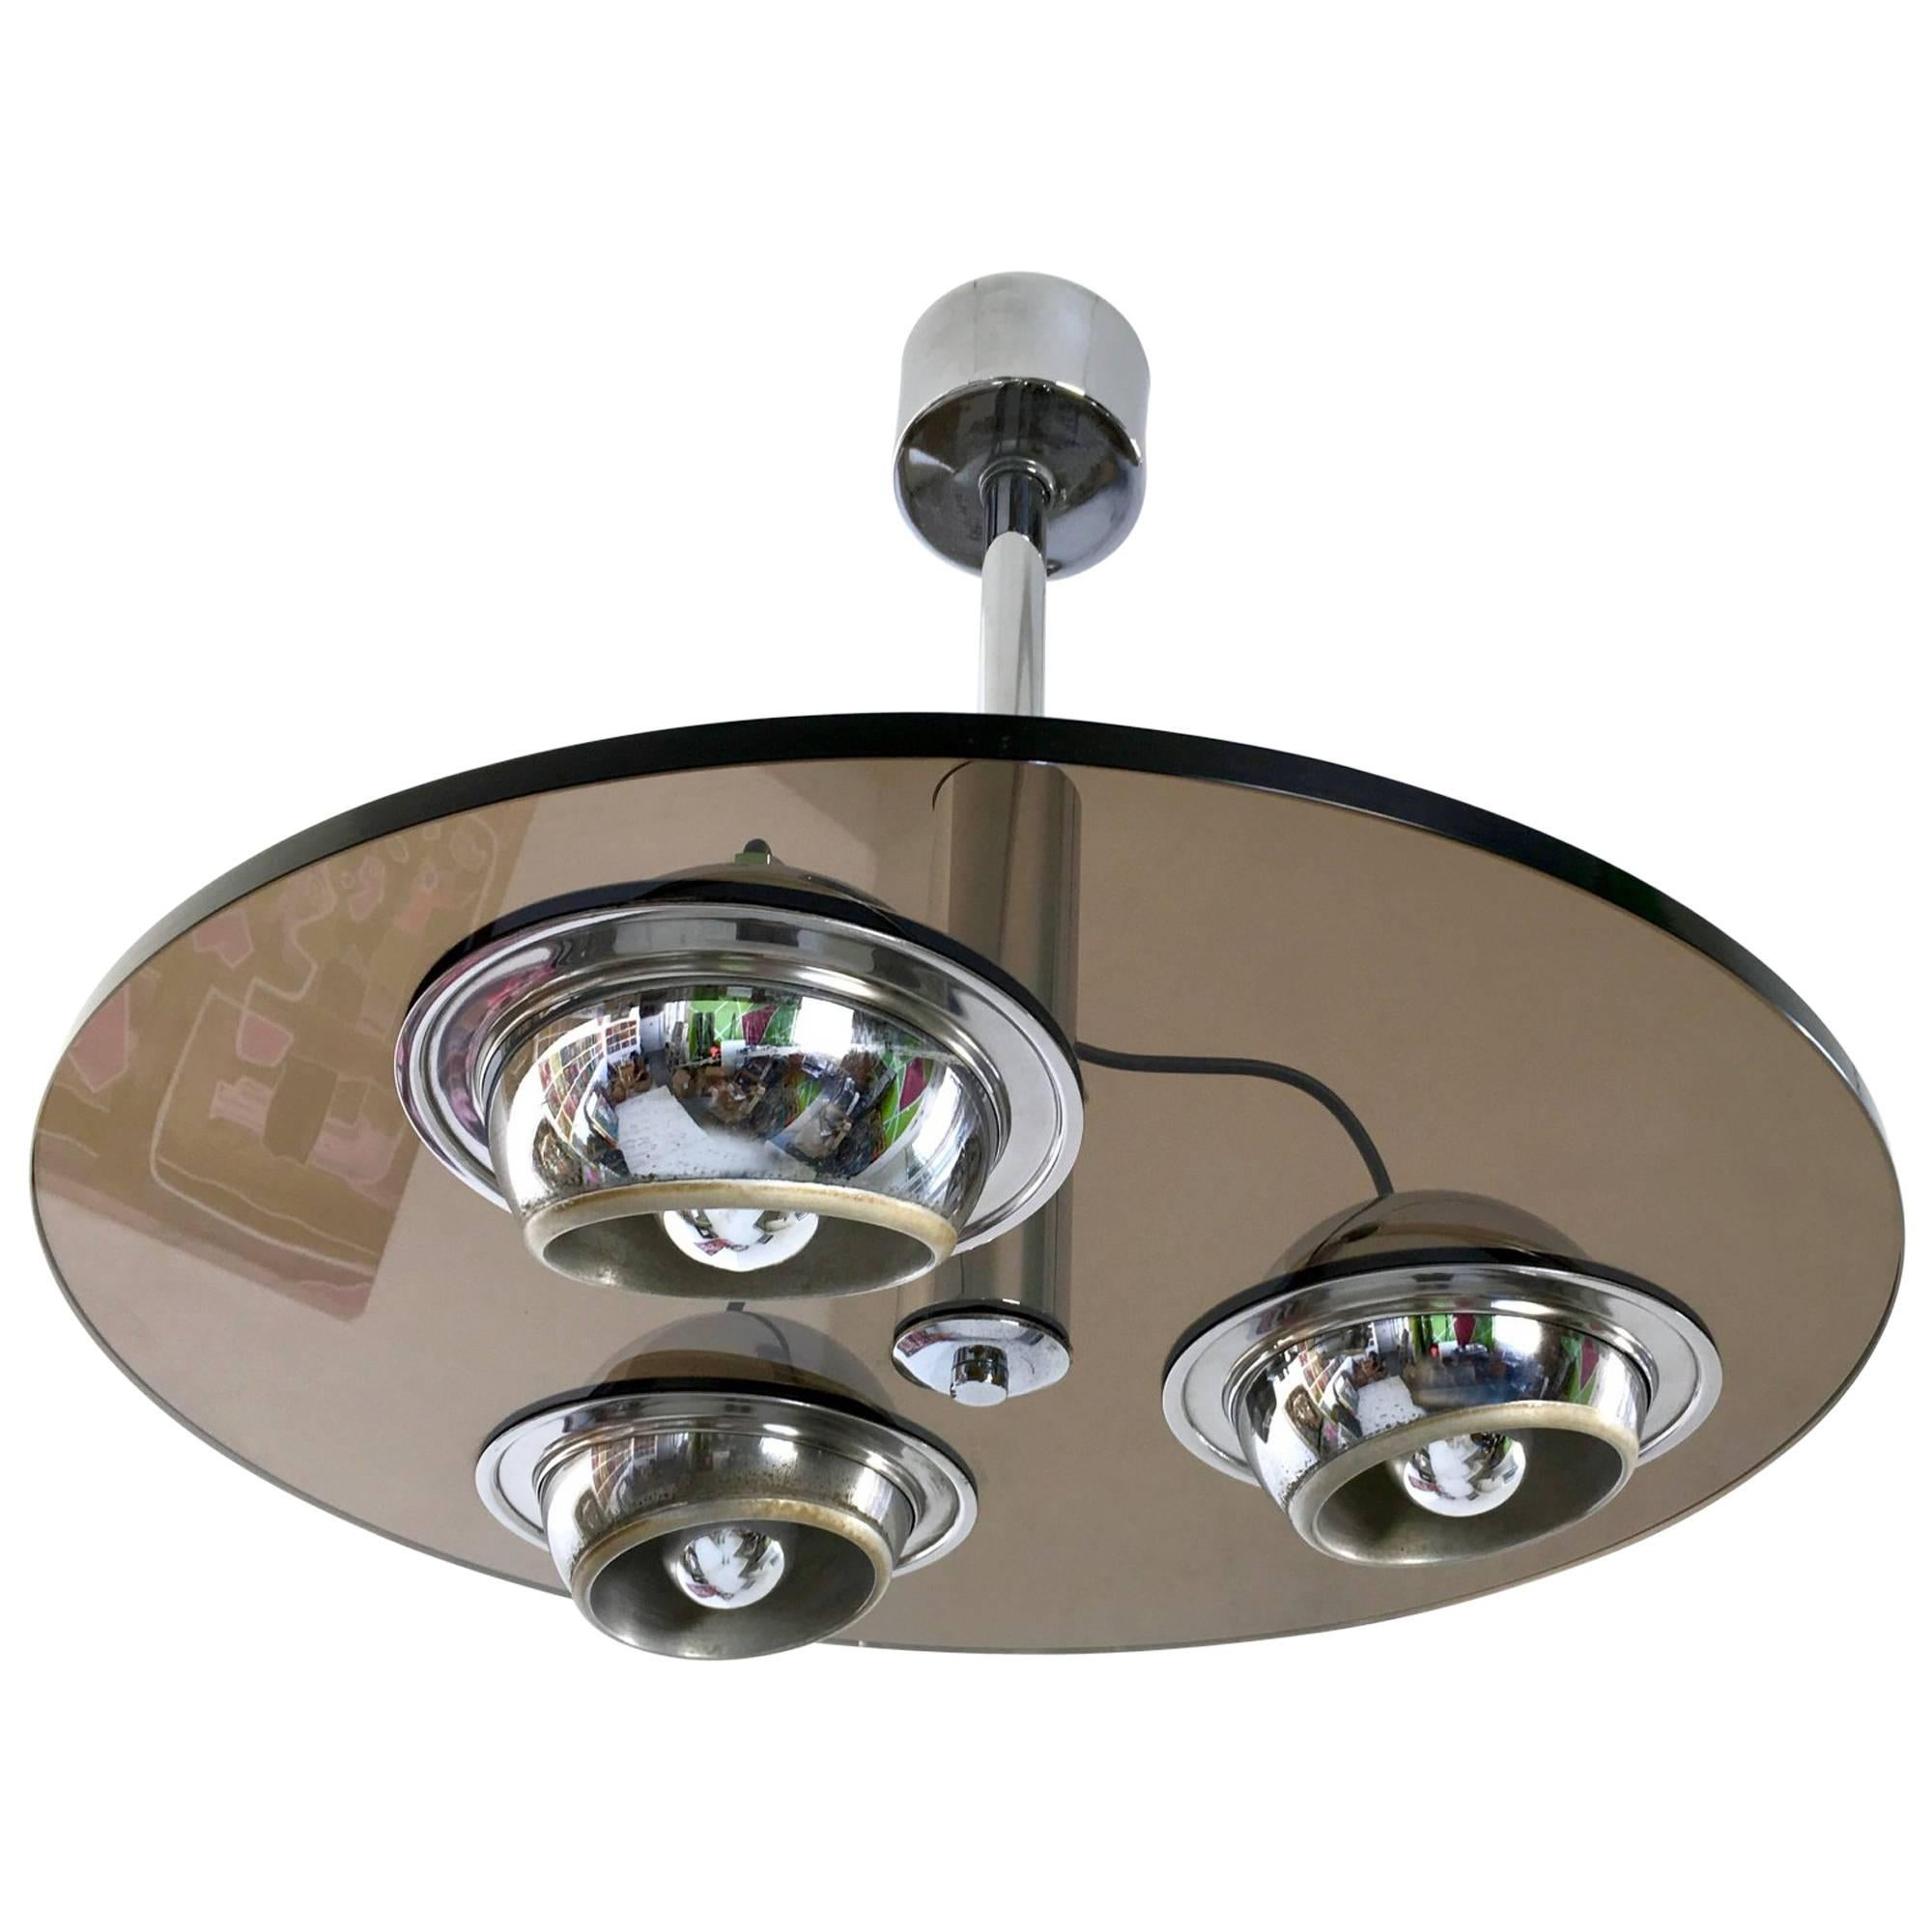 Round Thick Smoked Glass Ceiling Light, Italy, 1970s